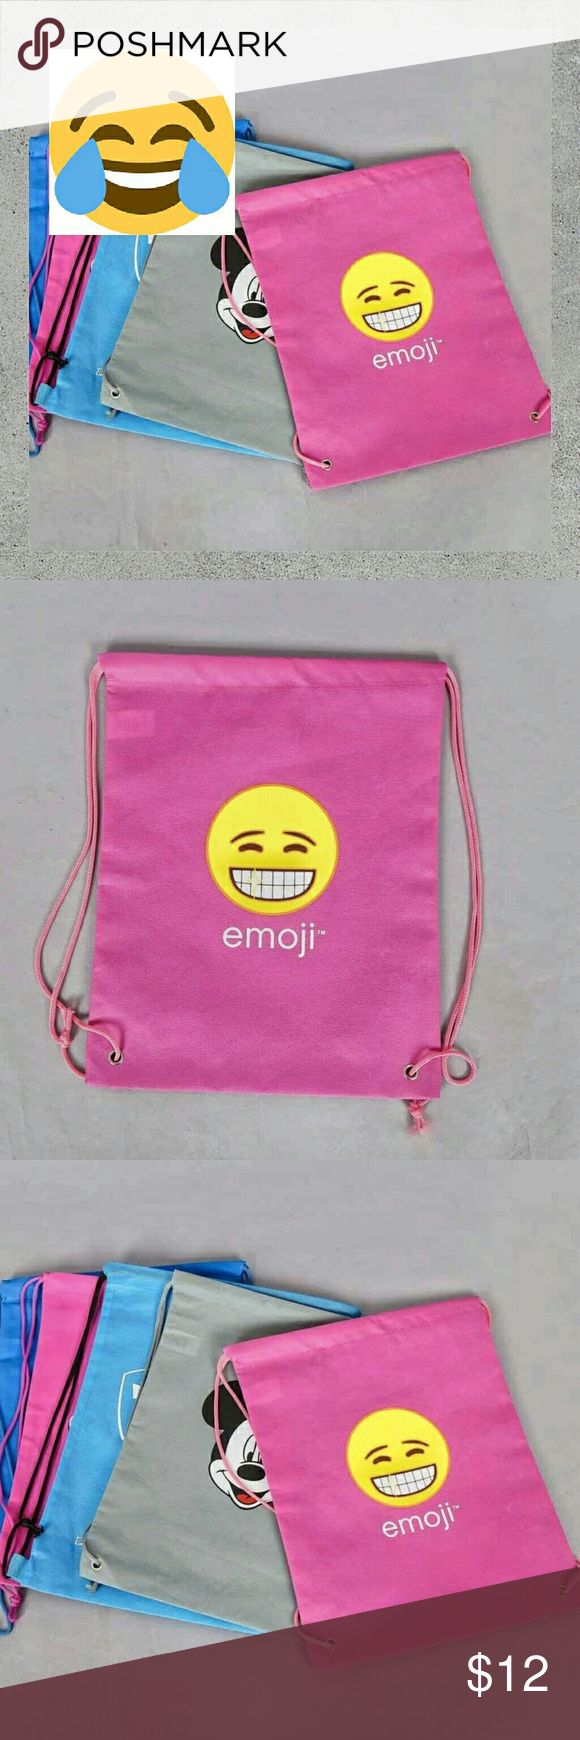 NWT {Emoji} Girl's Pink Sack •Pink Iconic Emoji Brand Sack Backpack.   •Highlights: Pink Colored Nylon Cord, Pink Polypropylene Sack. Yellow Smiling Emoji Screen Print.   •No Discoloration •No Tears •No Stains •NWT •OFFERS WELCOME •TRADE ALSO •DOG FRIENDLY •SMOKE FREE HOME Emojis Accessories Bags